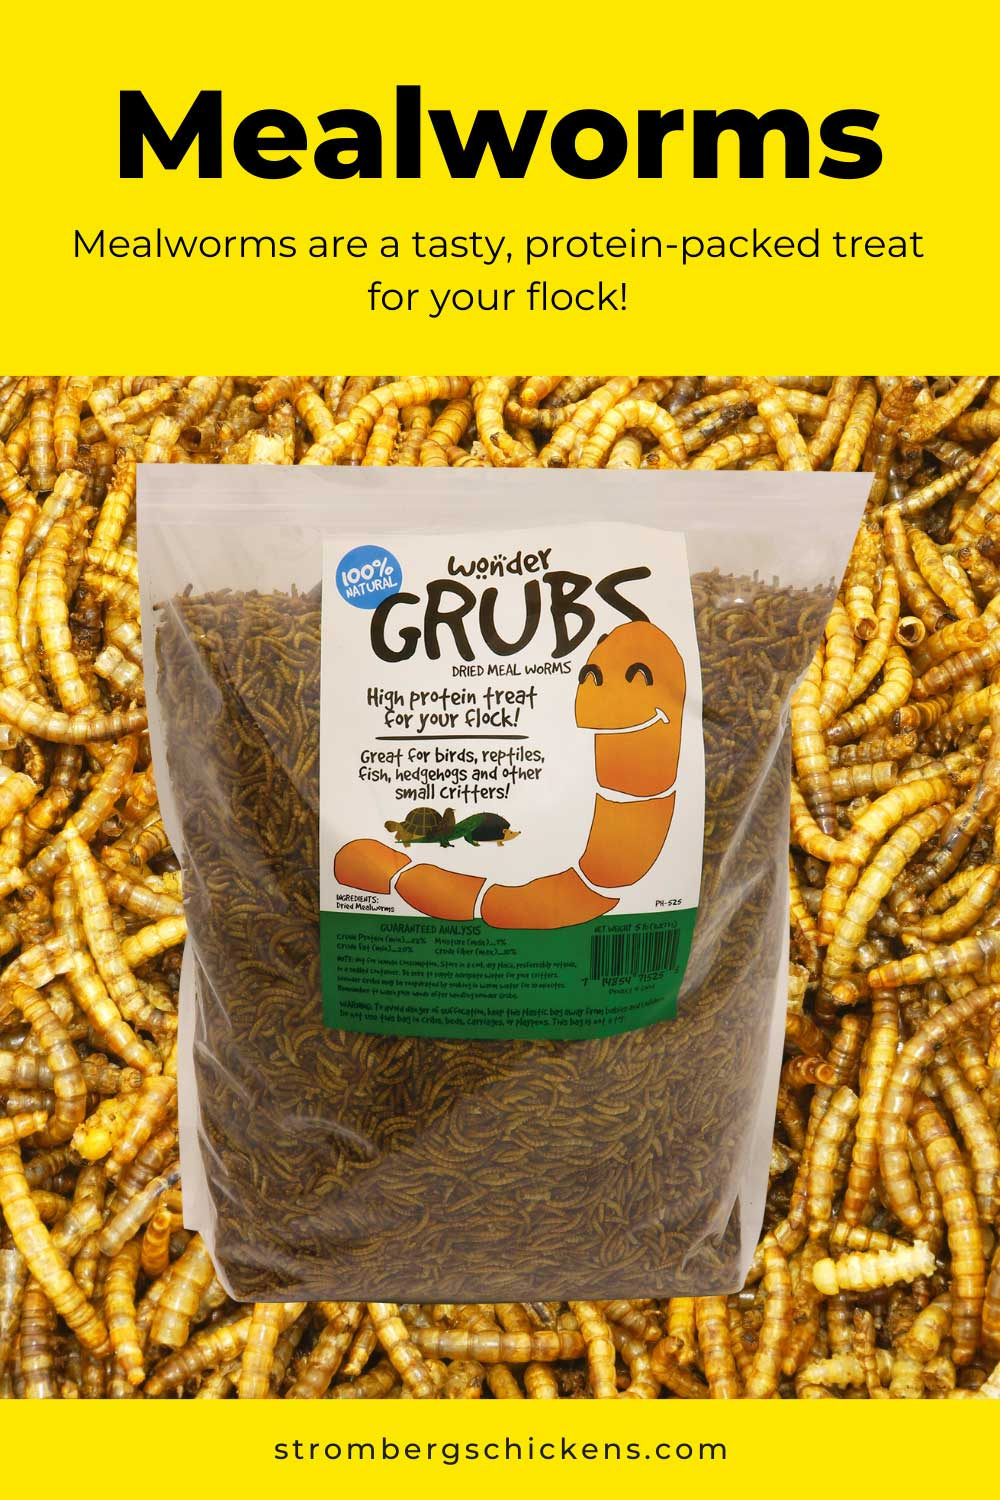 Wondergrubs mealworms are a protein-packed treat for your flock. Stromberg's